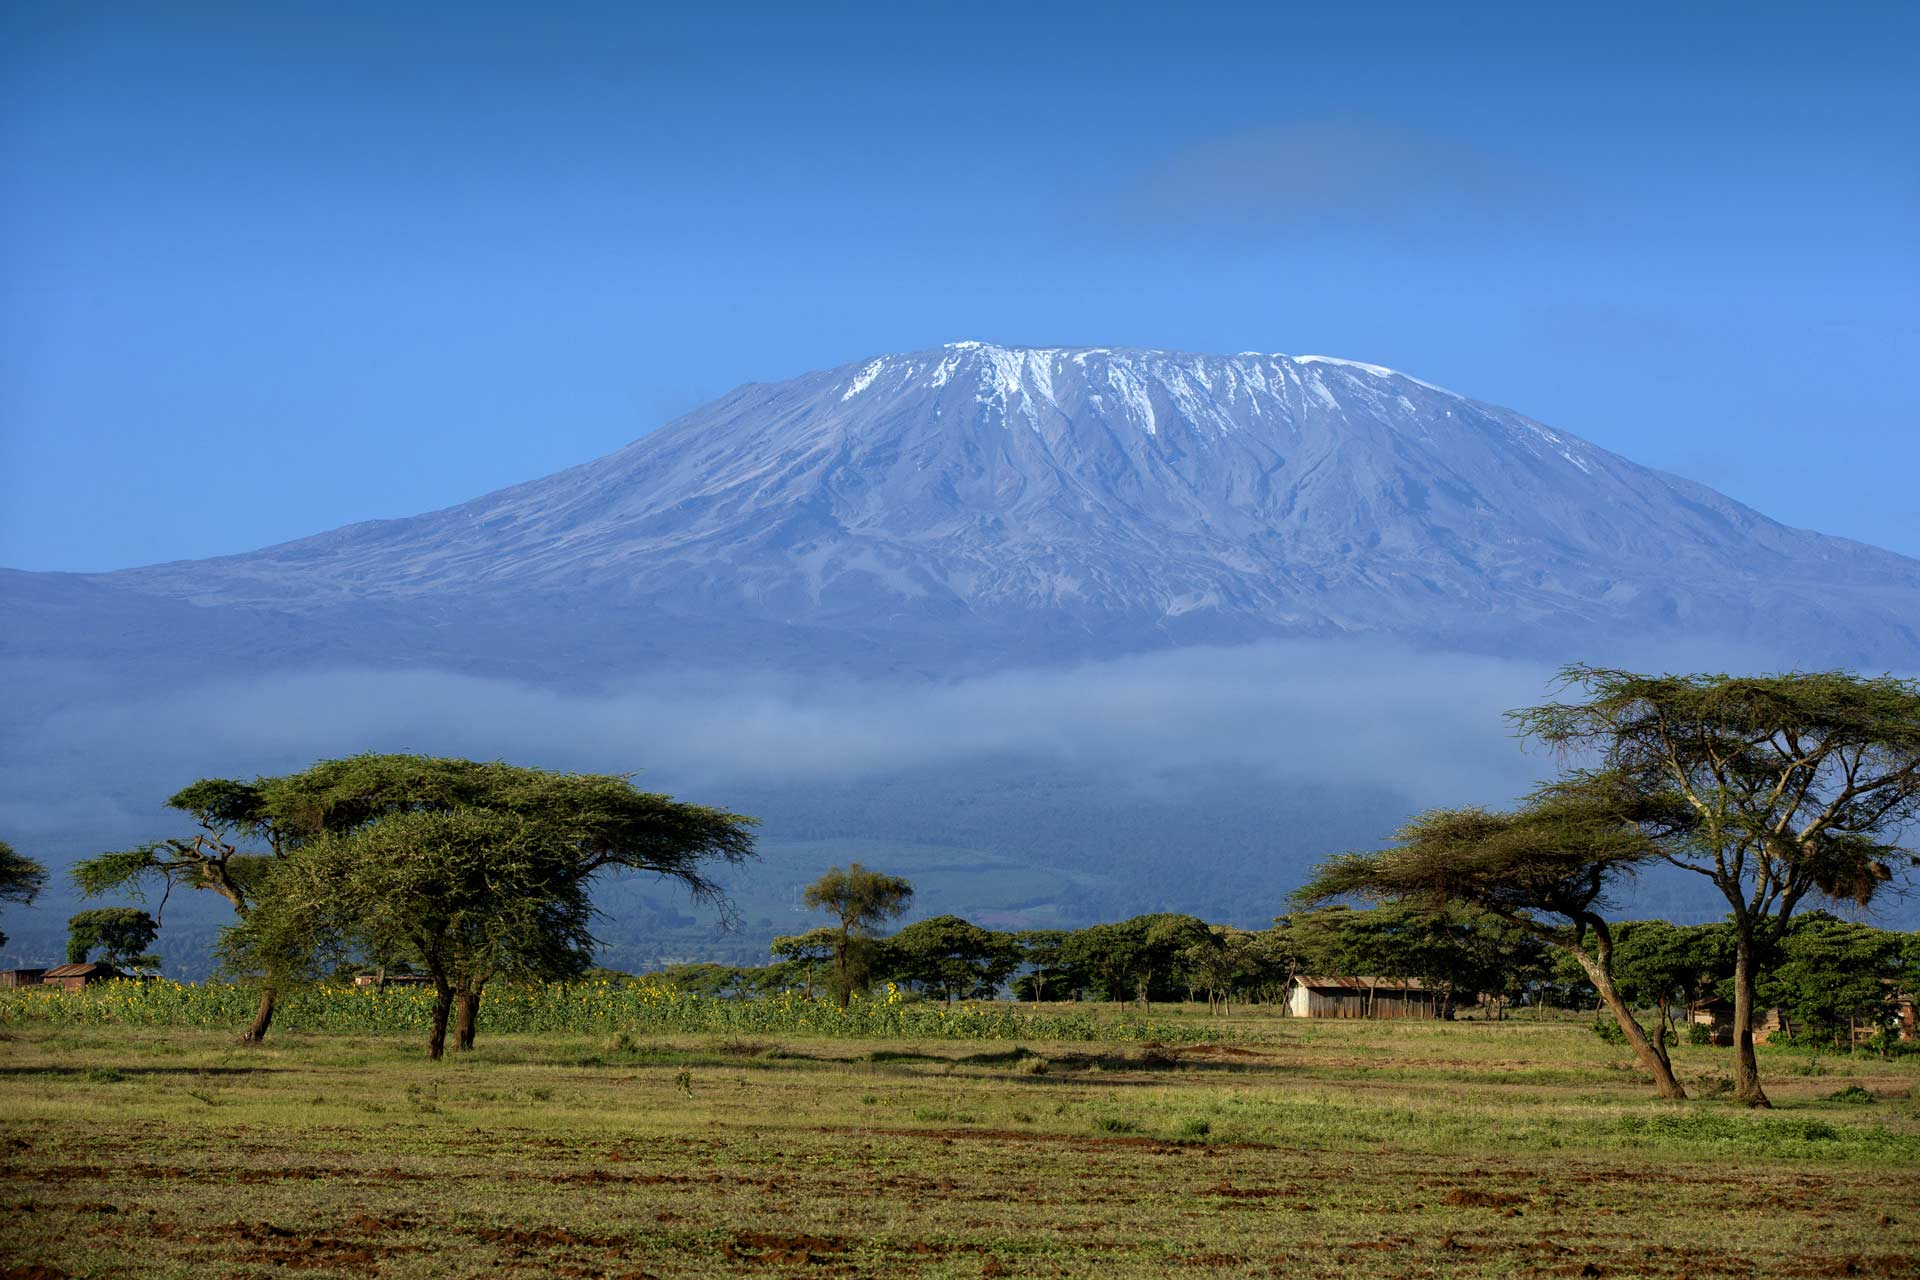 Snow on top of Mount Kilimanjaro in Amboseli